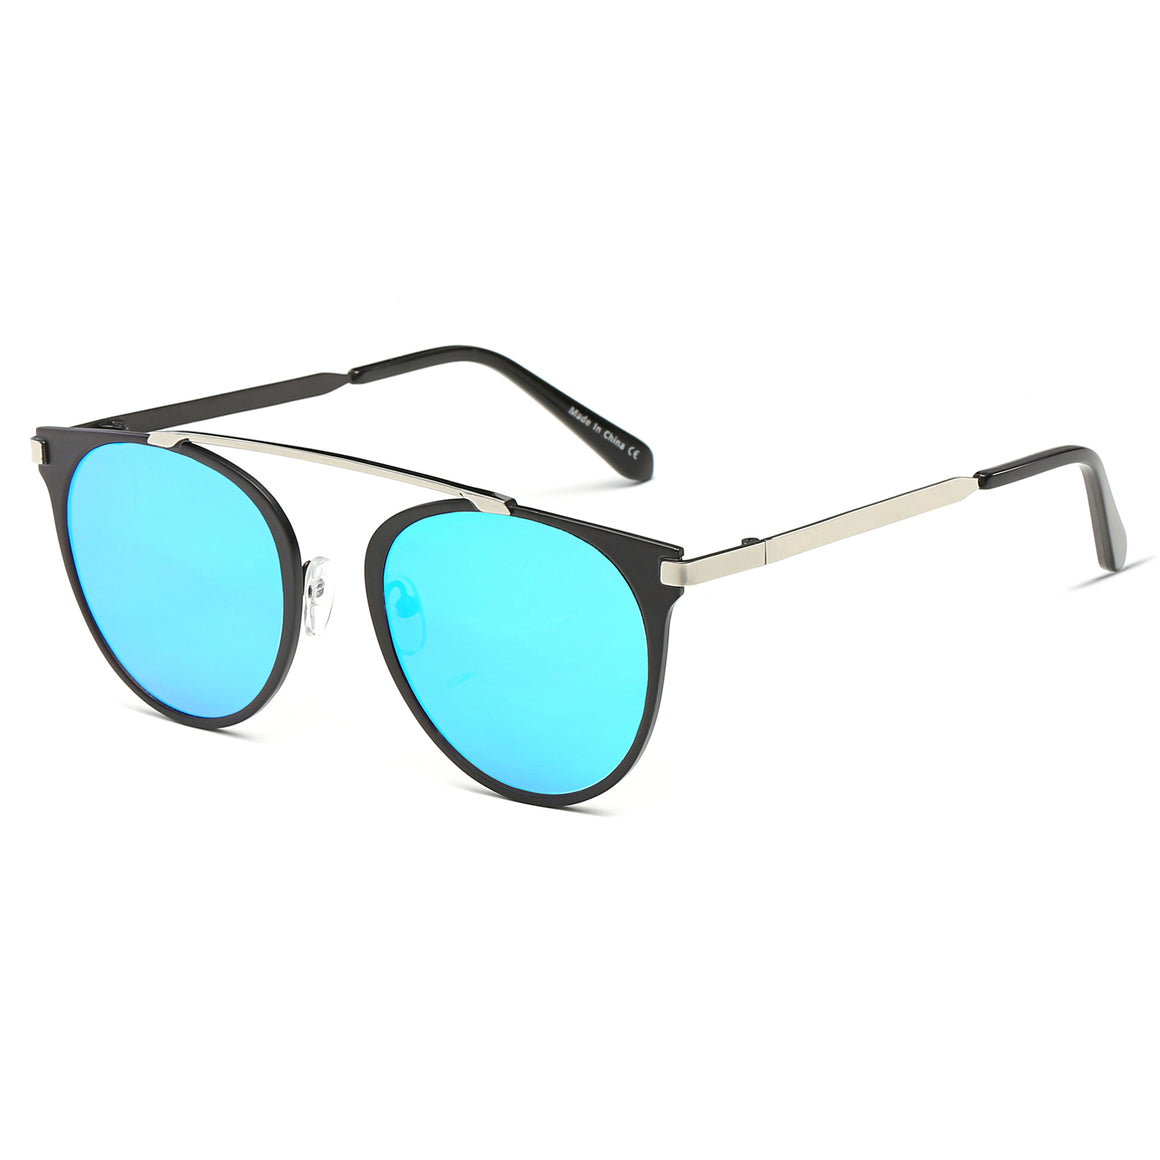 FRISCO | A18 - Modern Horn Rimmed Metal Frame Round Sunglasses - Cramilo Eyewear - Stylish Trendy Affordable Sunglasses Clear Glasses Eye Wear Fashion